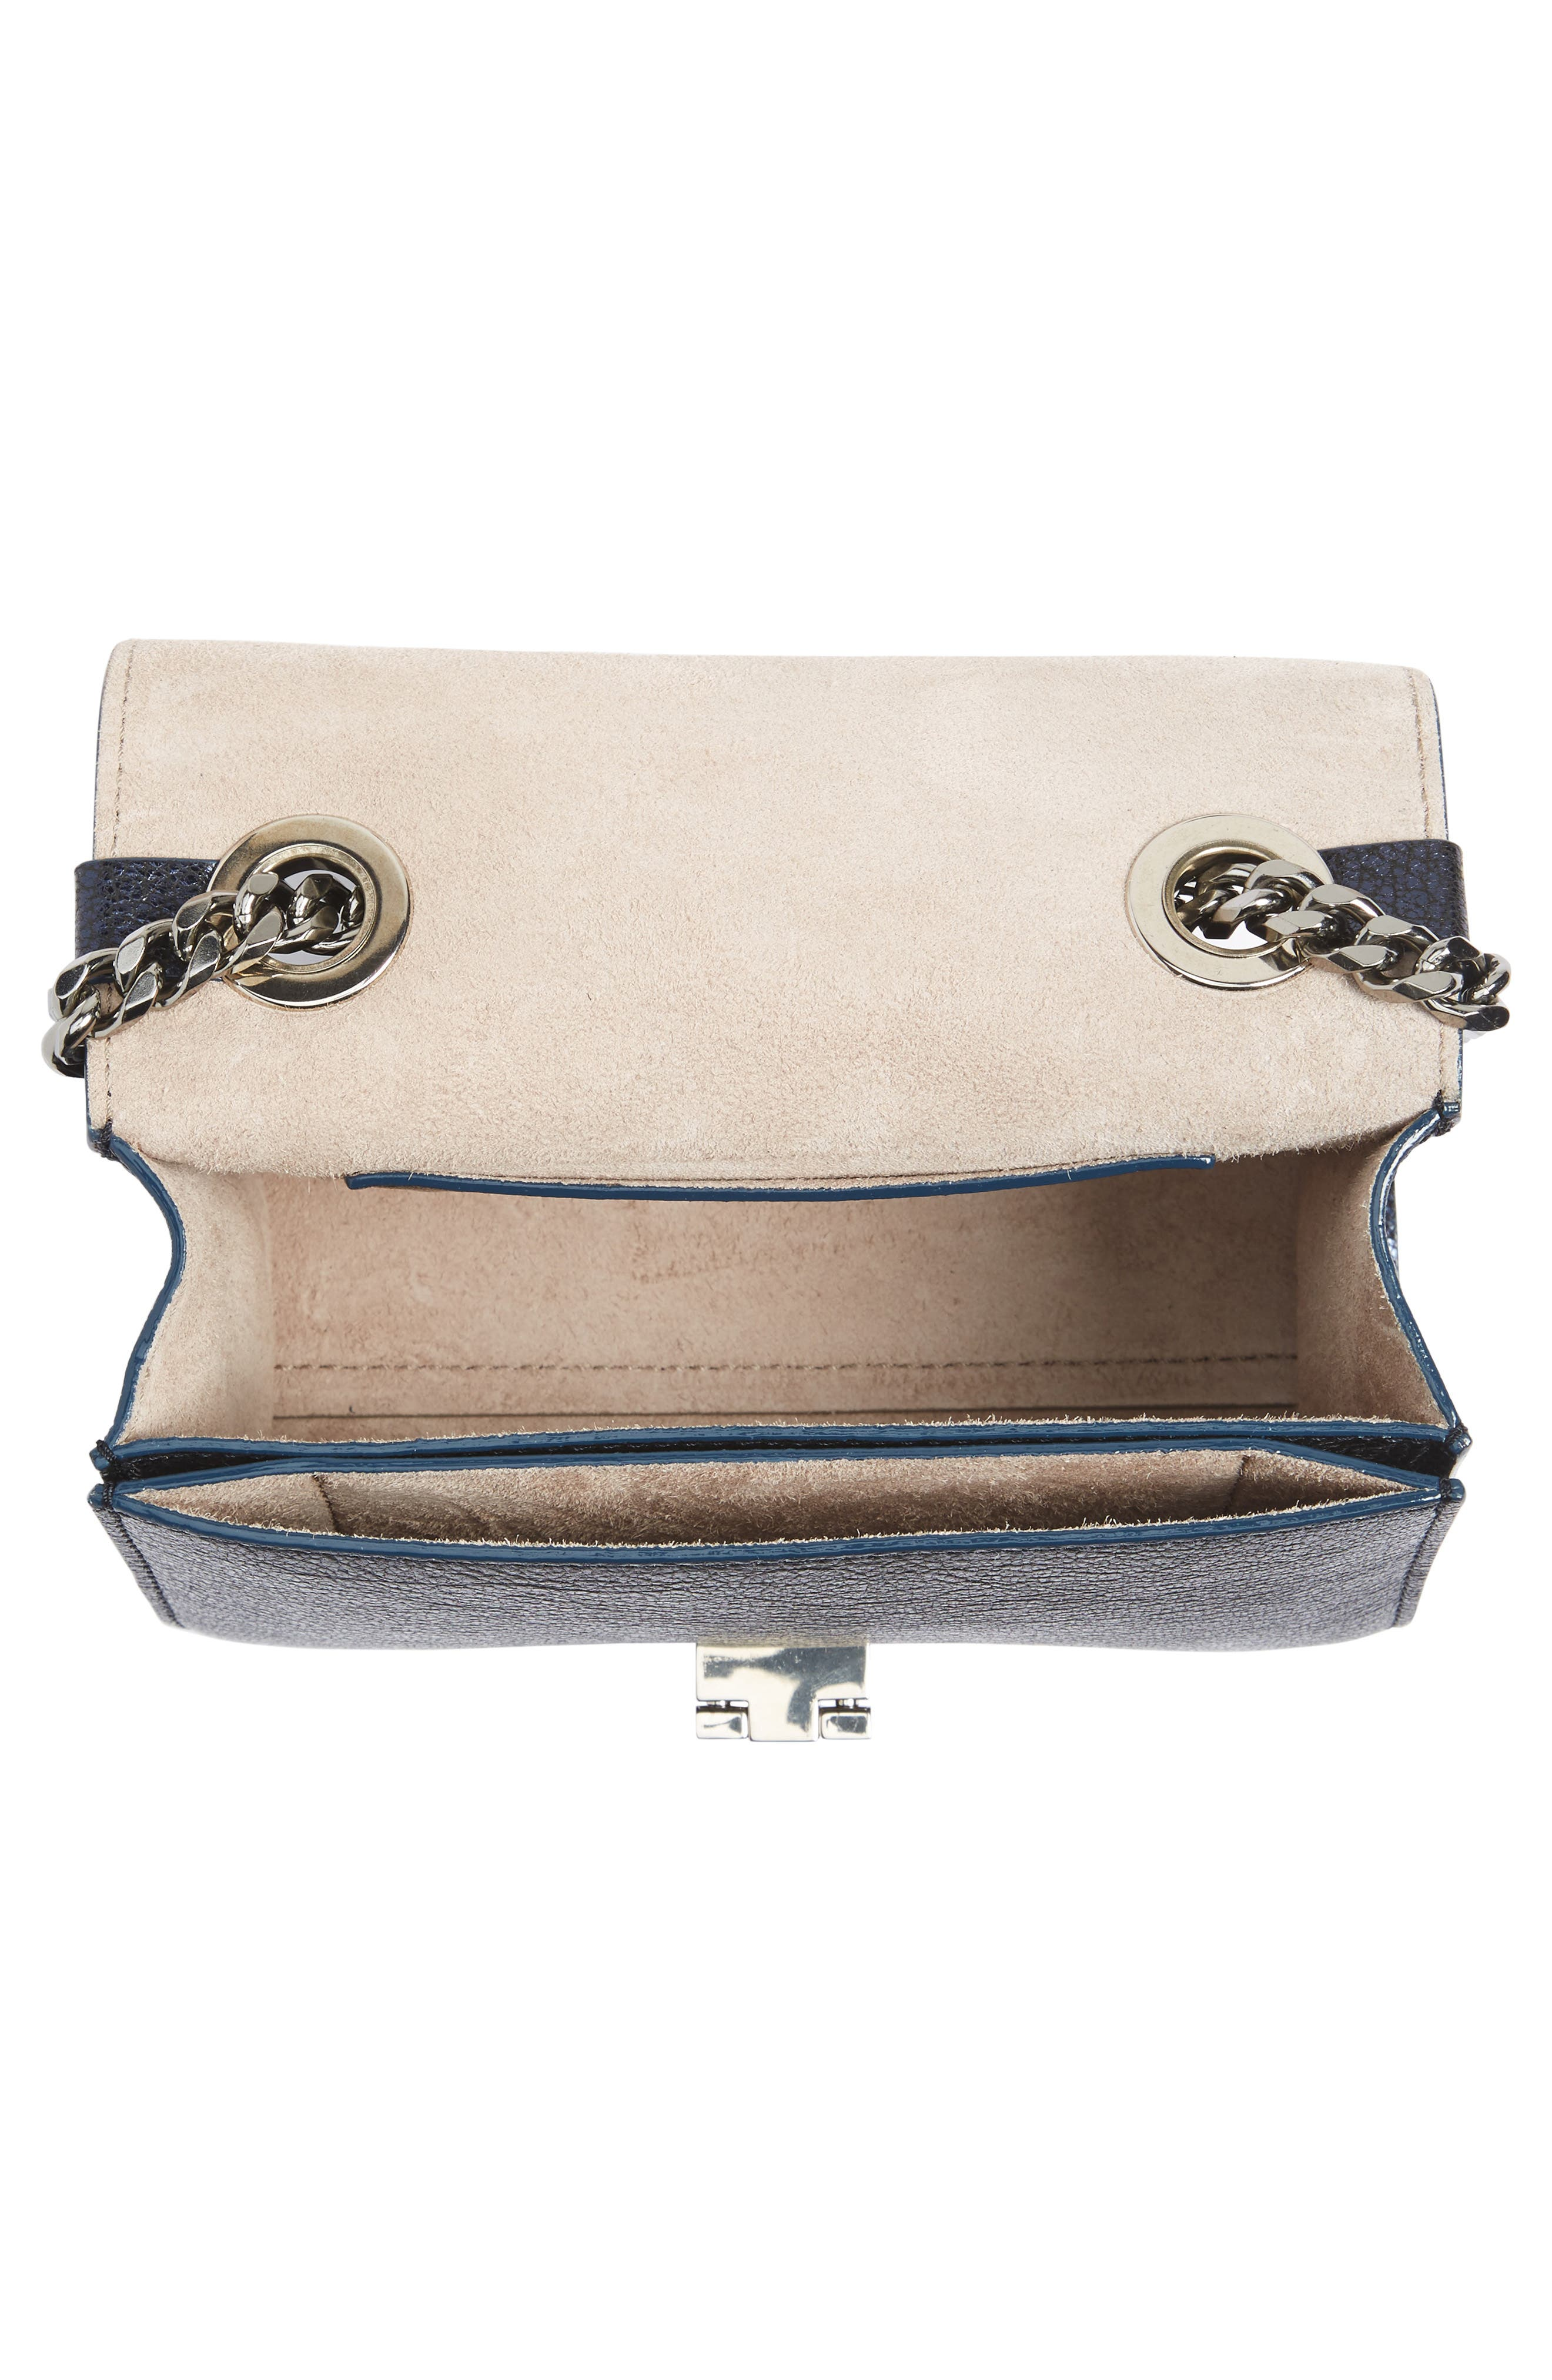 Mini Rebel Metallic Leather Crossbody Bag,                             Alternate thumbnail 4, color,                             400